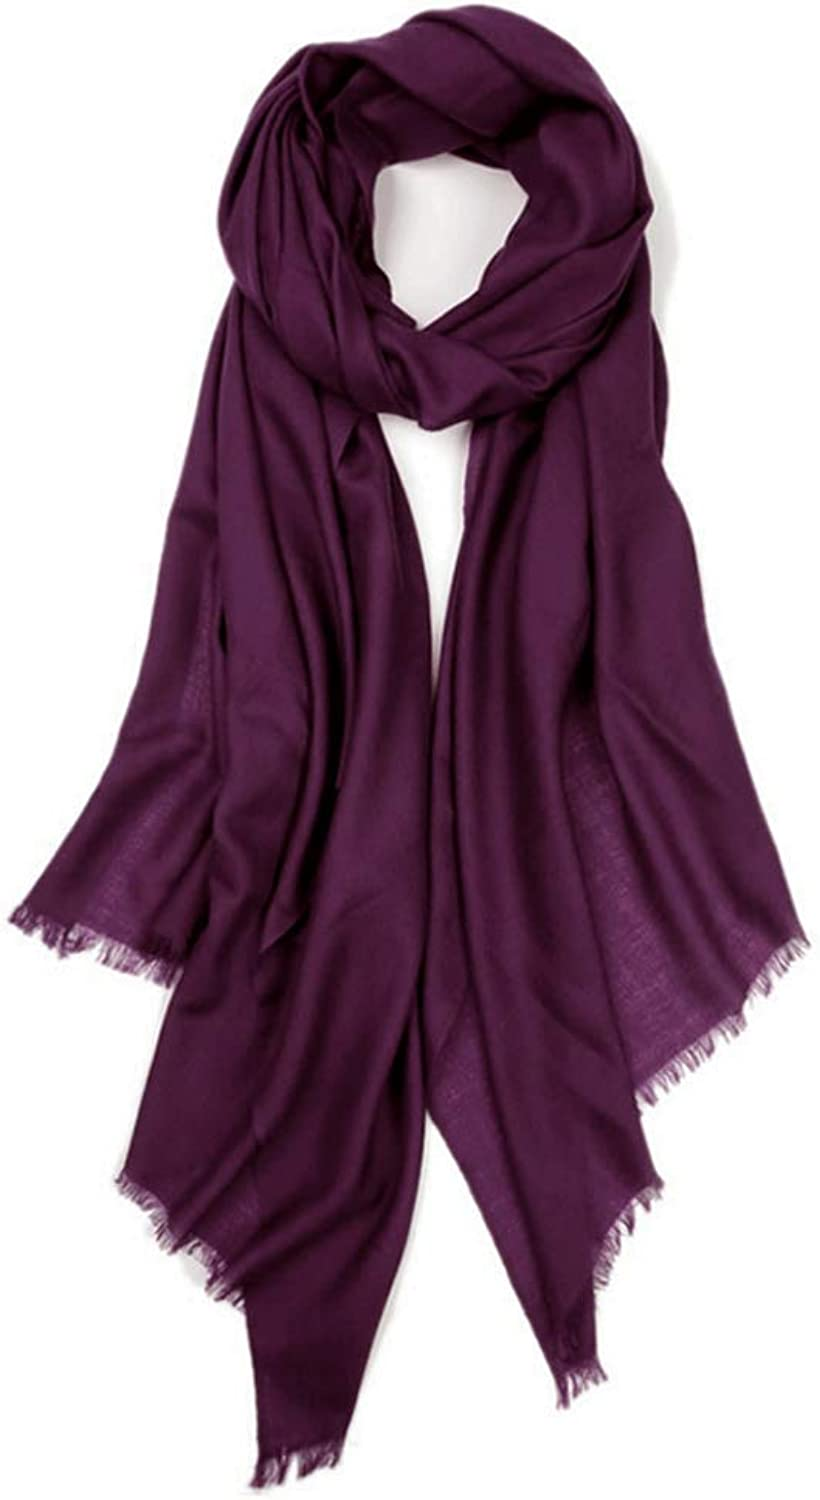 CHX Scarf 240cm×100cm Autumn Winter Woman Oversized Size Thin Soft Elegant Warm Wrap Shawl V (color   Purple)